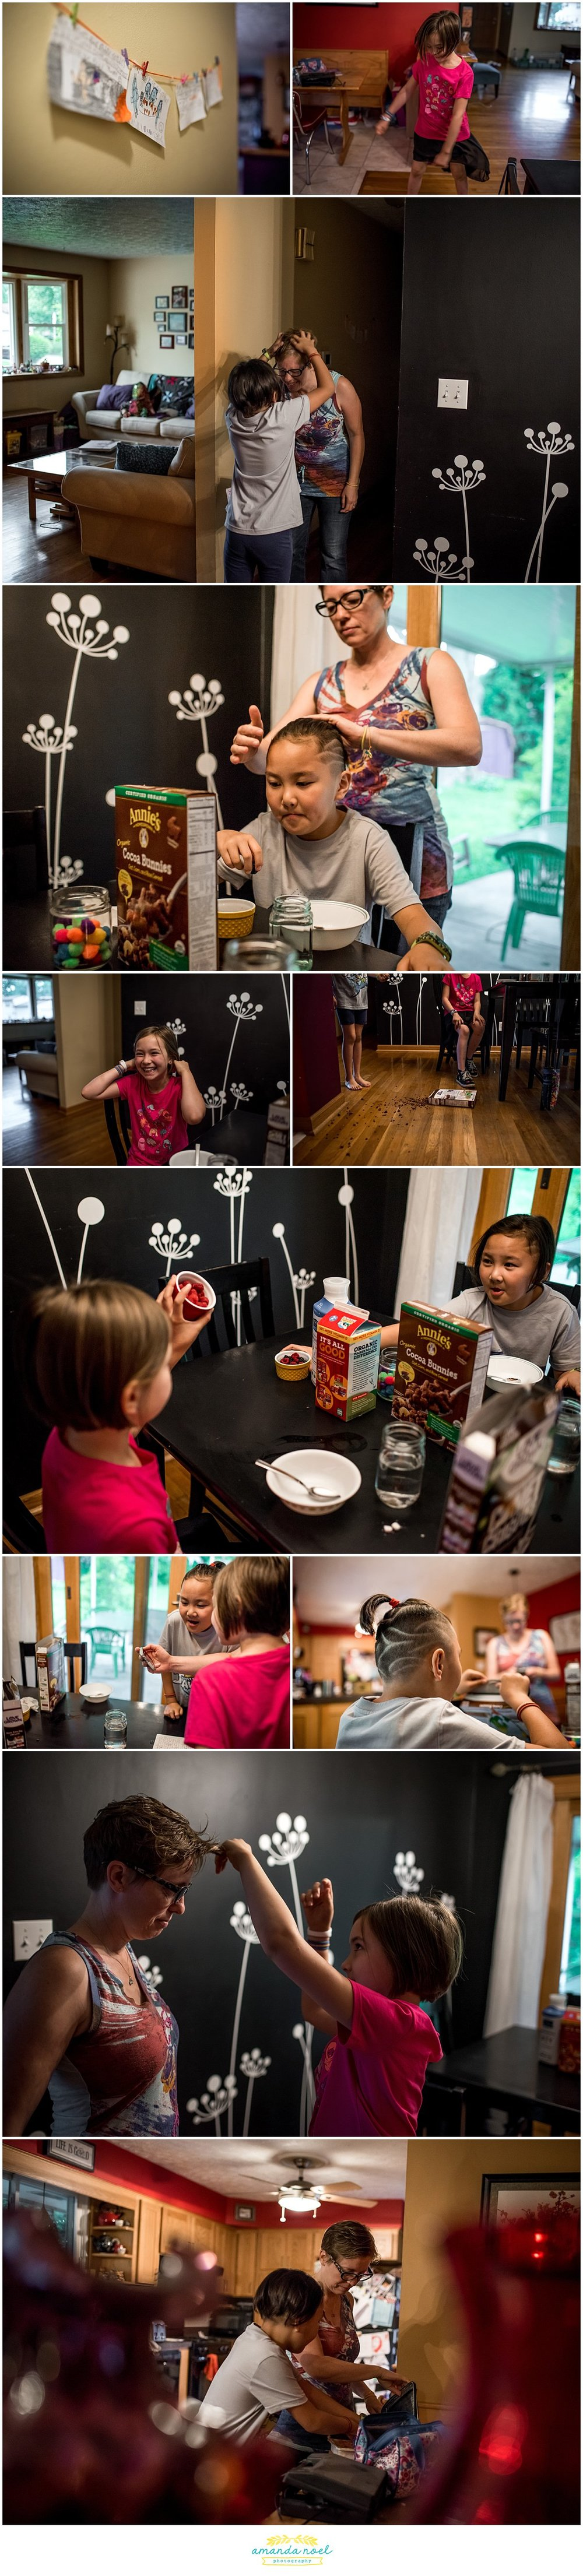 Columbus Ohio family photography | real life - breakfast